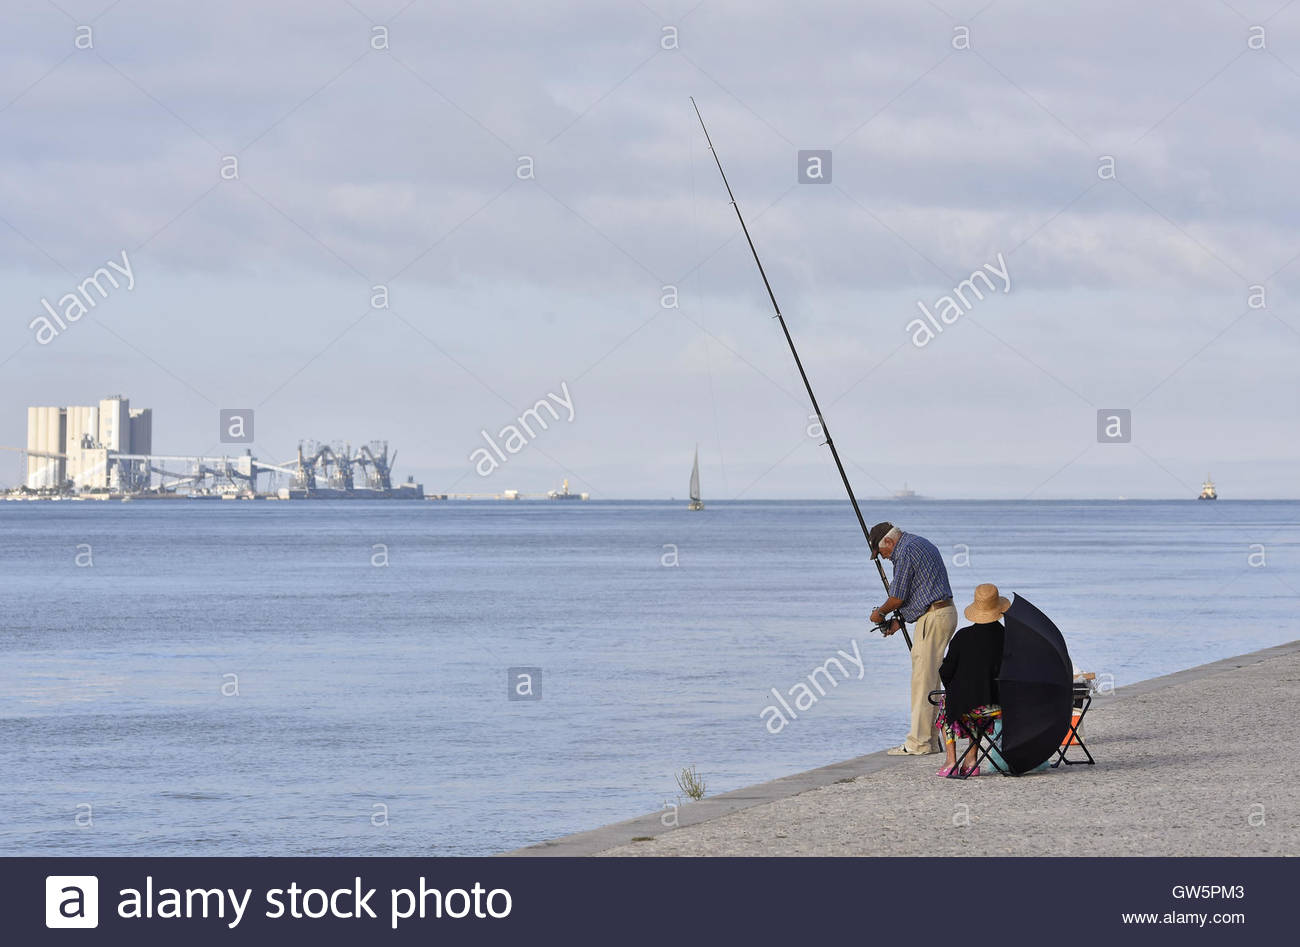 fisherman in portugal stockfotos fisherman in portugal bilder alamy. Black Bedroom Furniture Sets. Home Design Ideas